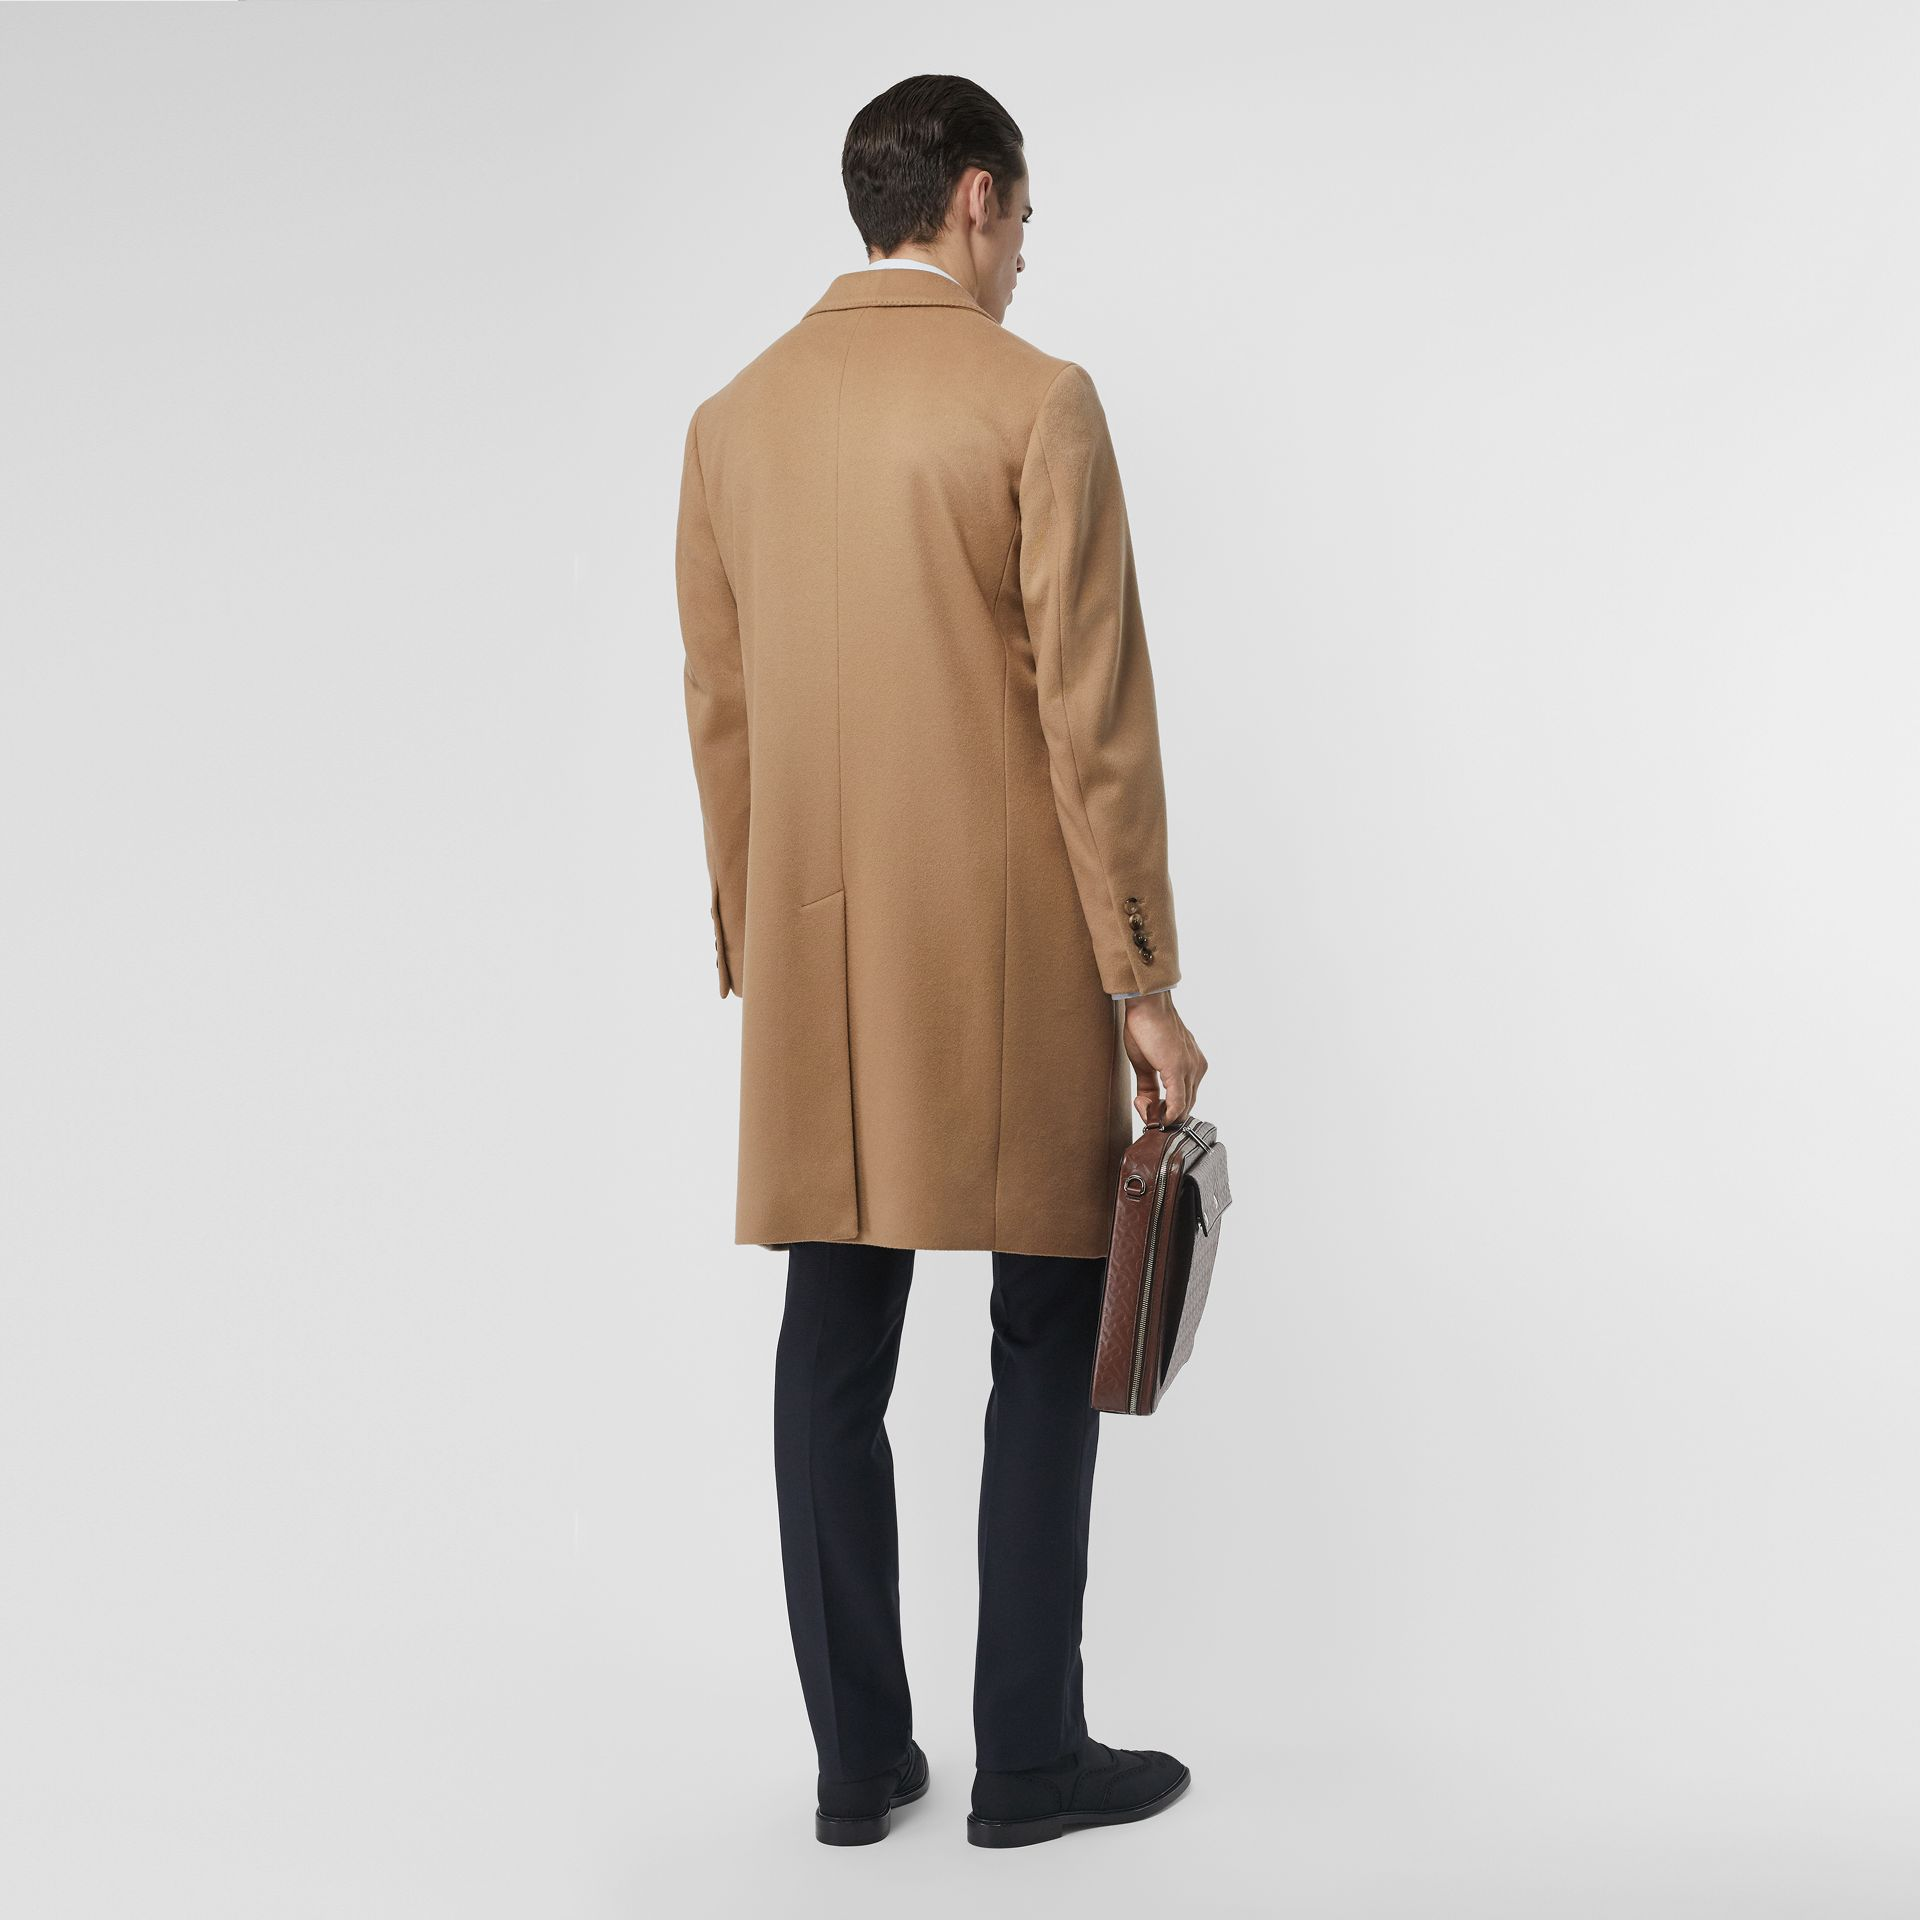 Wool Cashmere Tailored Coat in Camel - Men | Burberry United States - gallery image 2